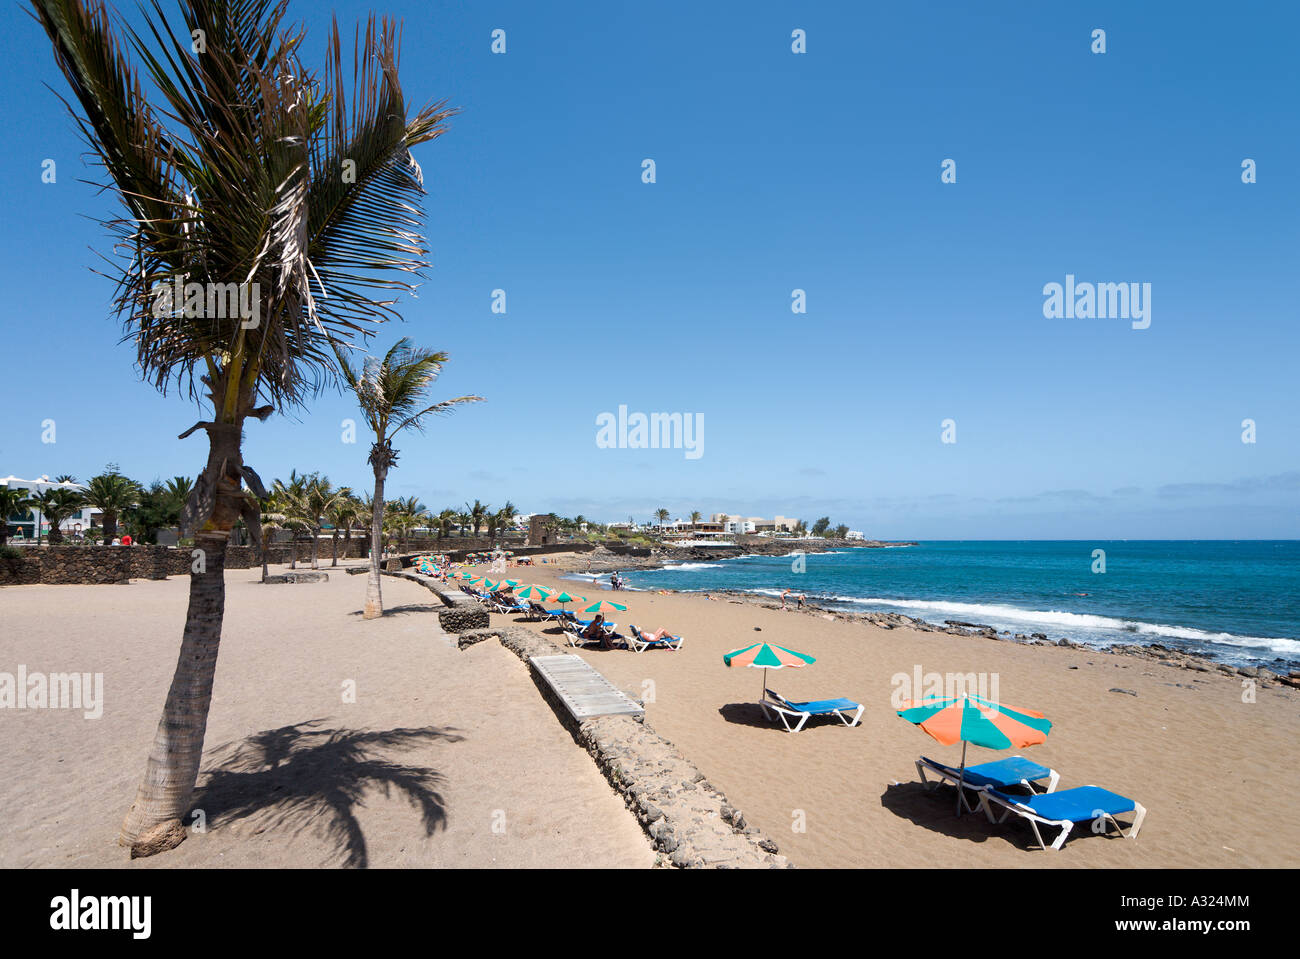 Beach At Playa Bastian Costa Teguise Lanzarote Canary Islands Stock Photo 10645171 Alamy